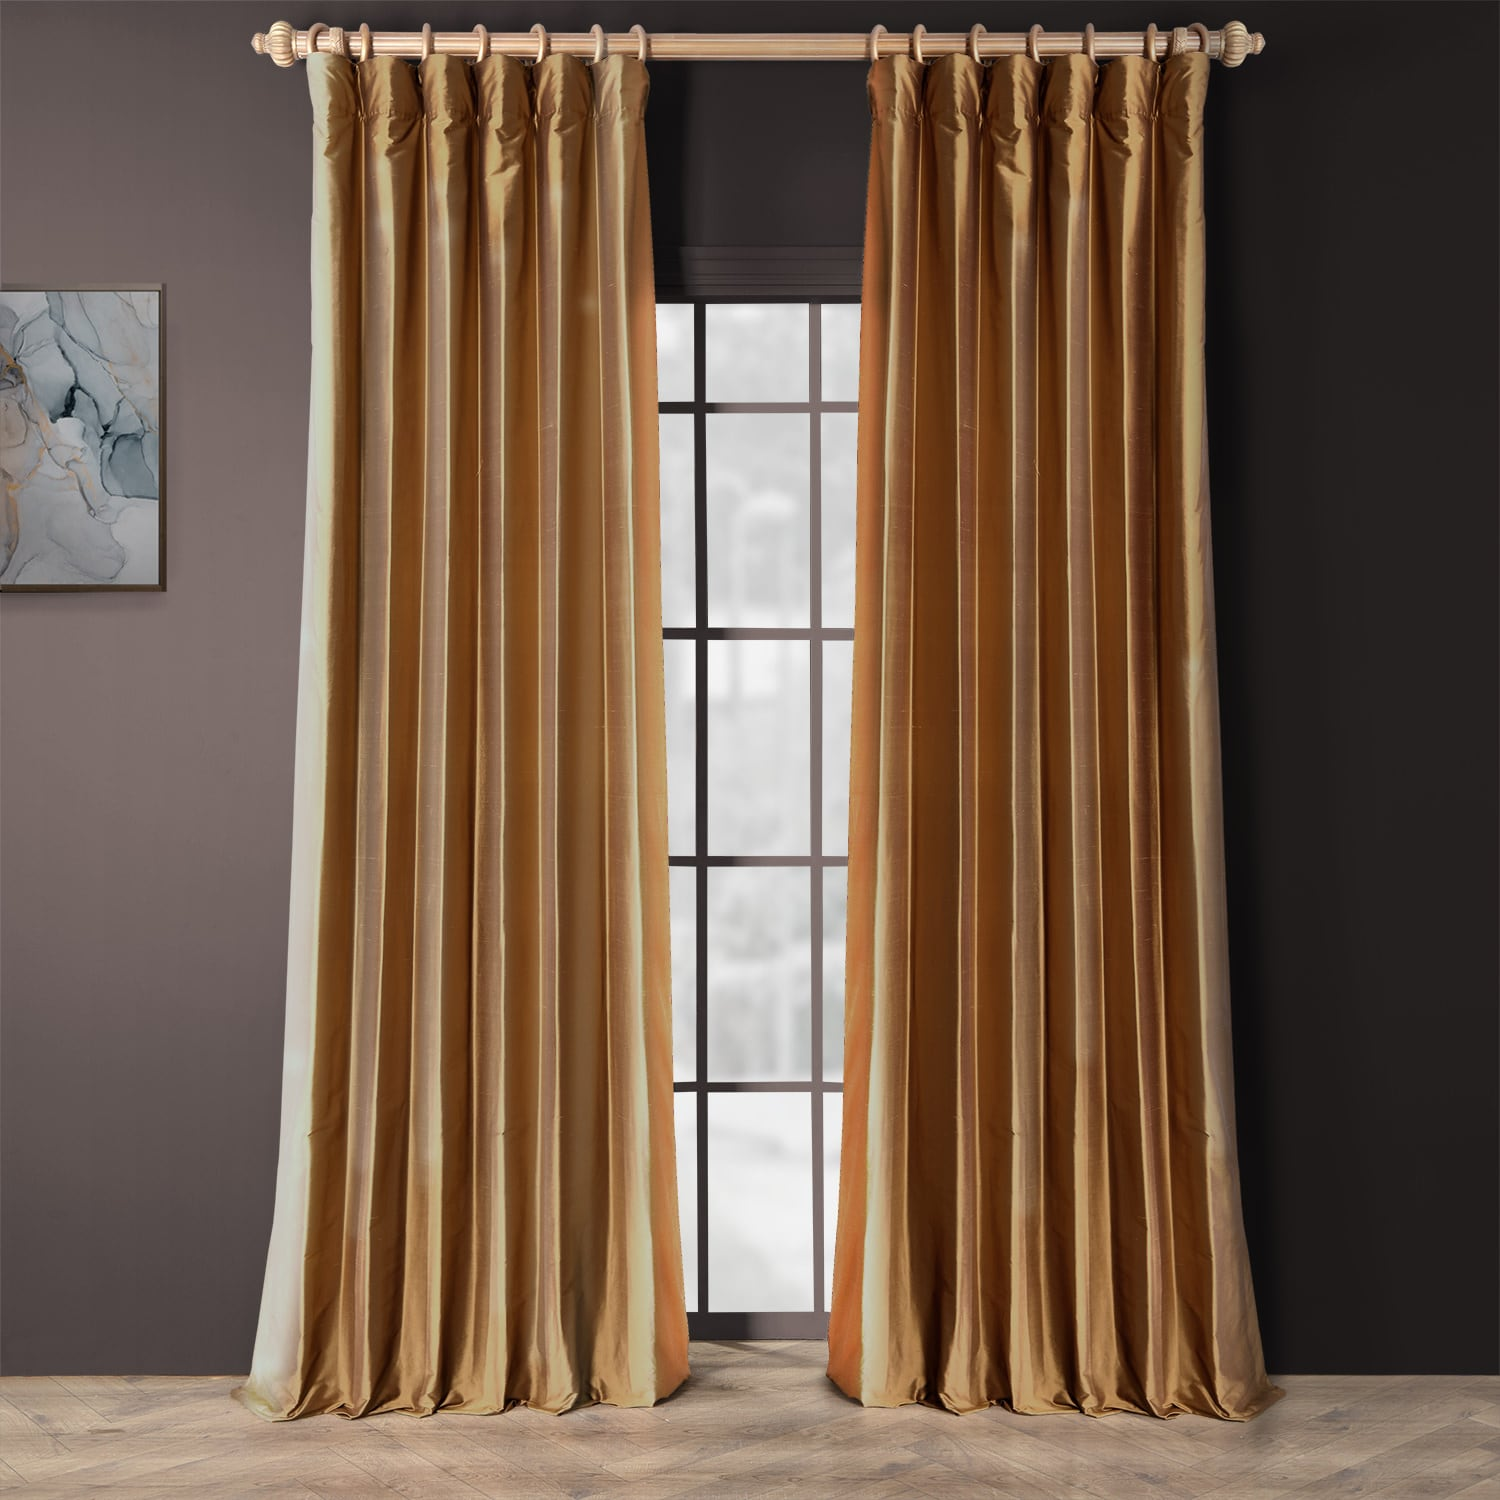 Fabulous Copper Silk Curtains | Half Price Drapes ZB11